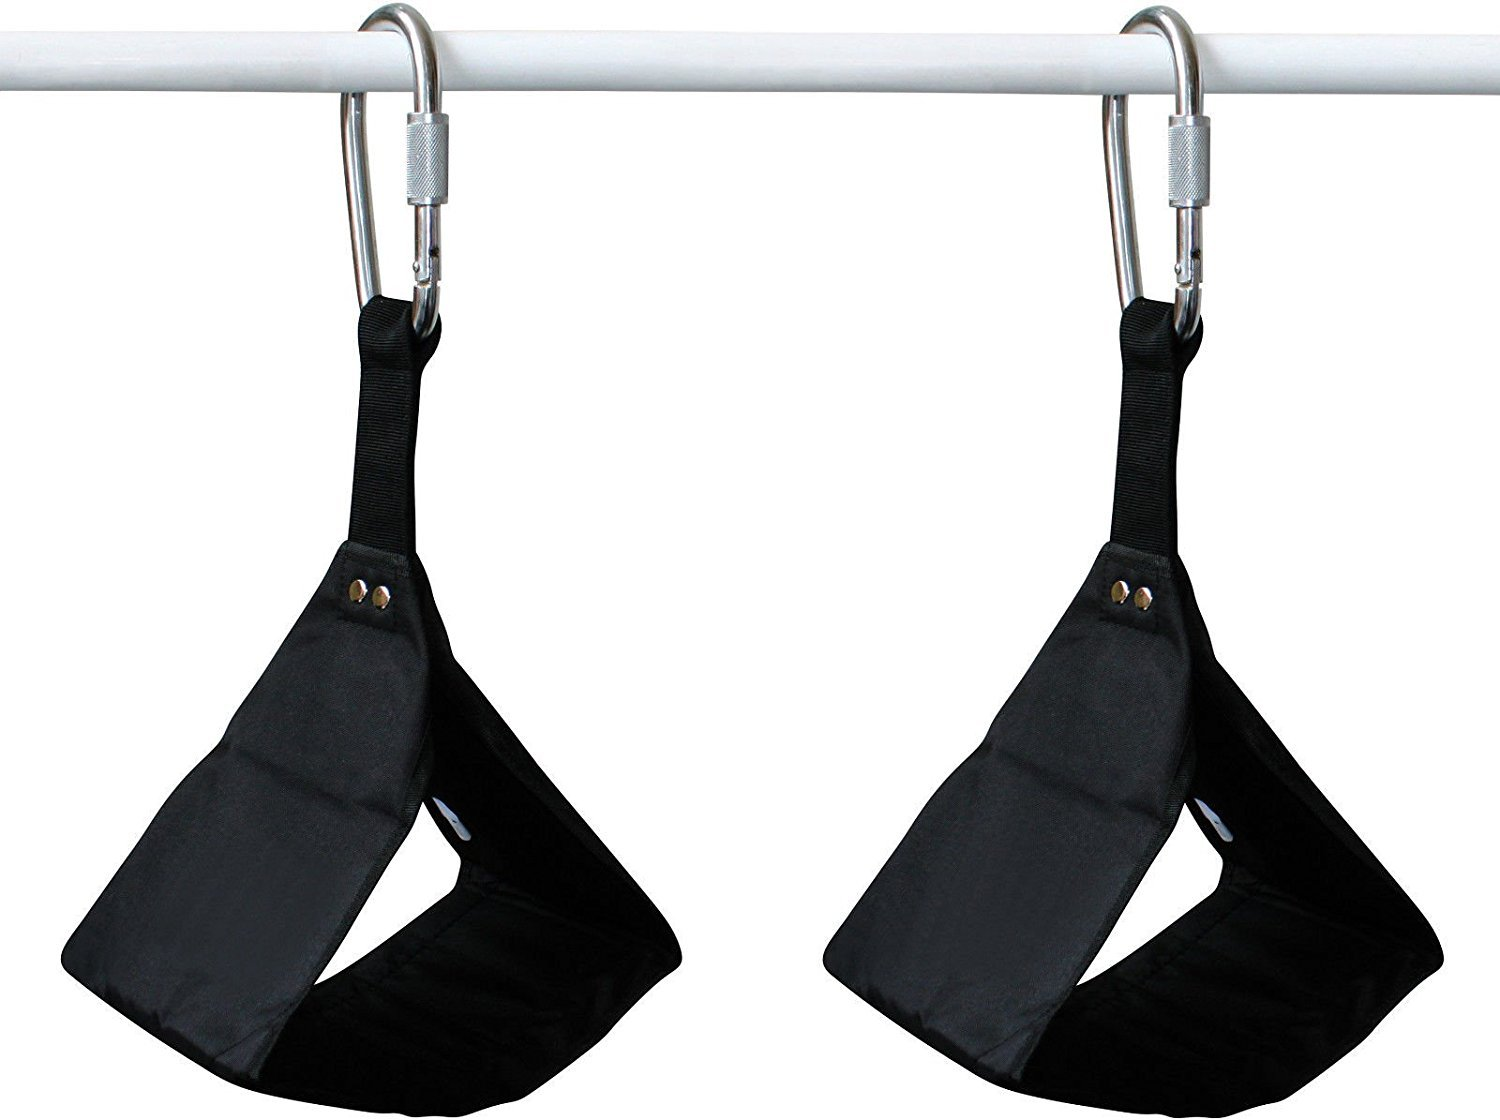 Steel D-Rings Safe Lock Door Hanging RDX AB Straps Weight Lifting Abdominal Exercise Padded Slings Great for Chinning Pull up Leg Raises Gym Fitness Workout Training